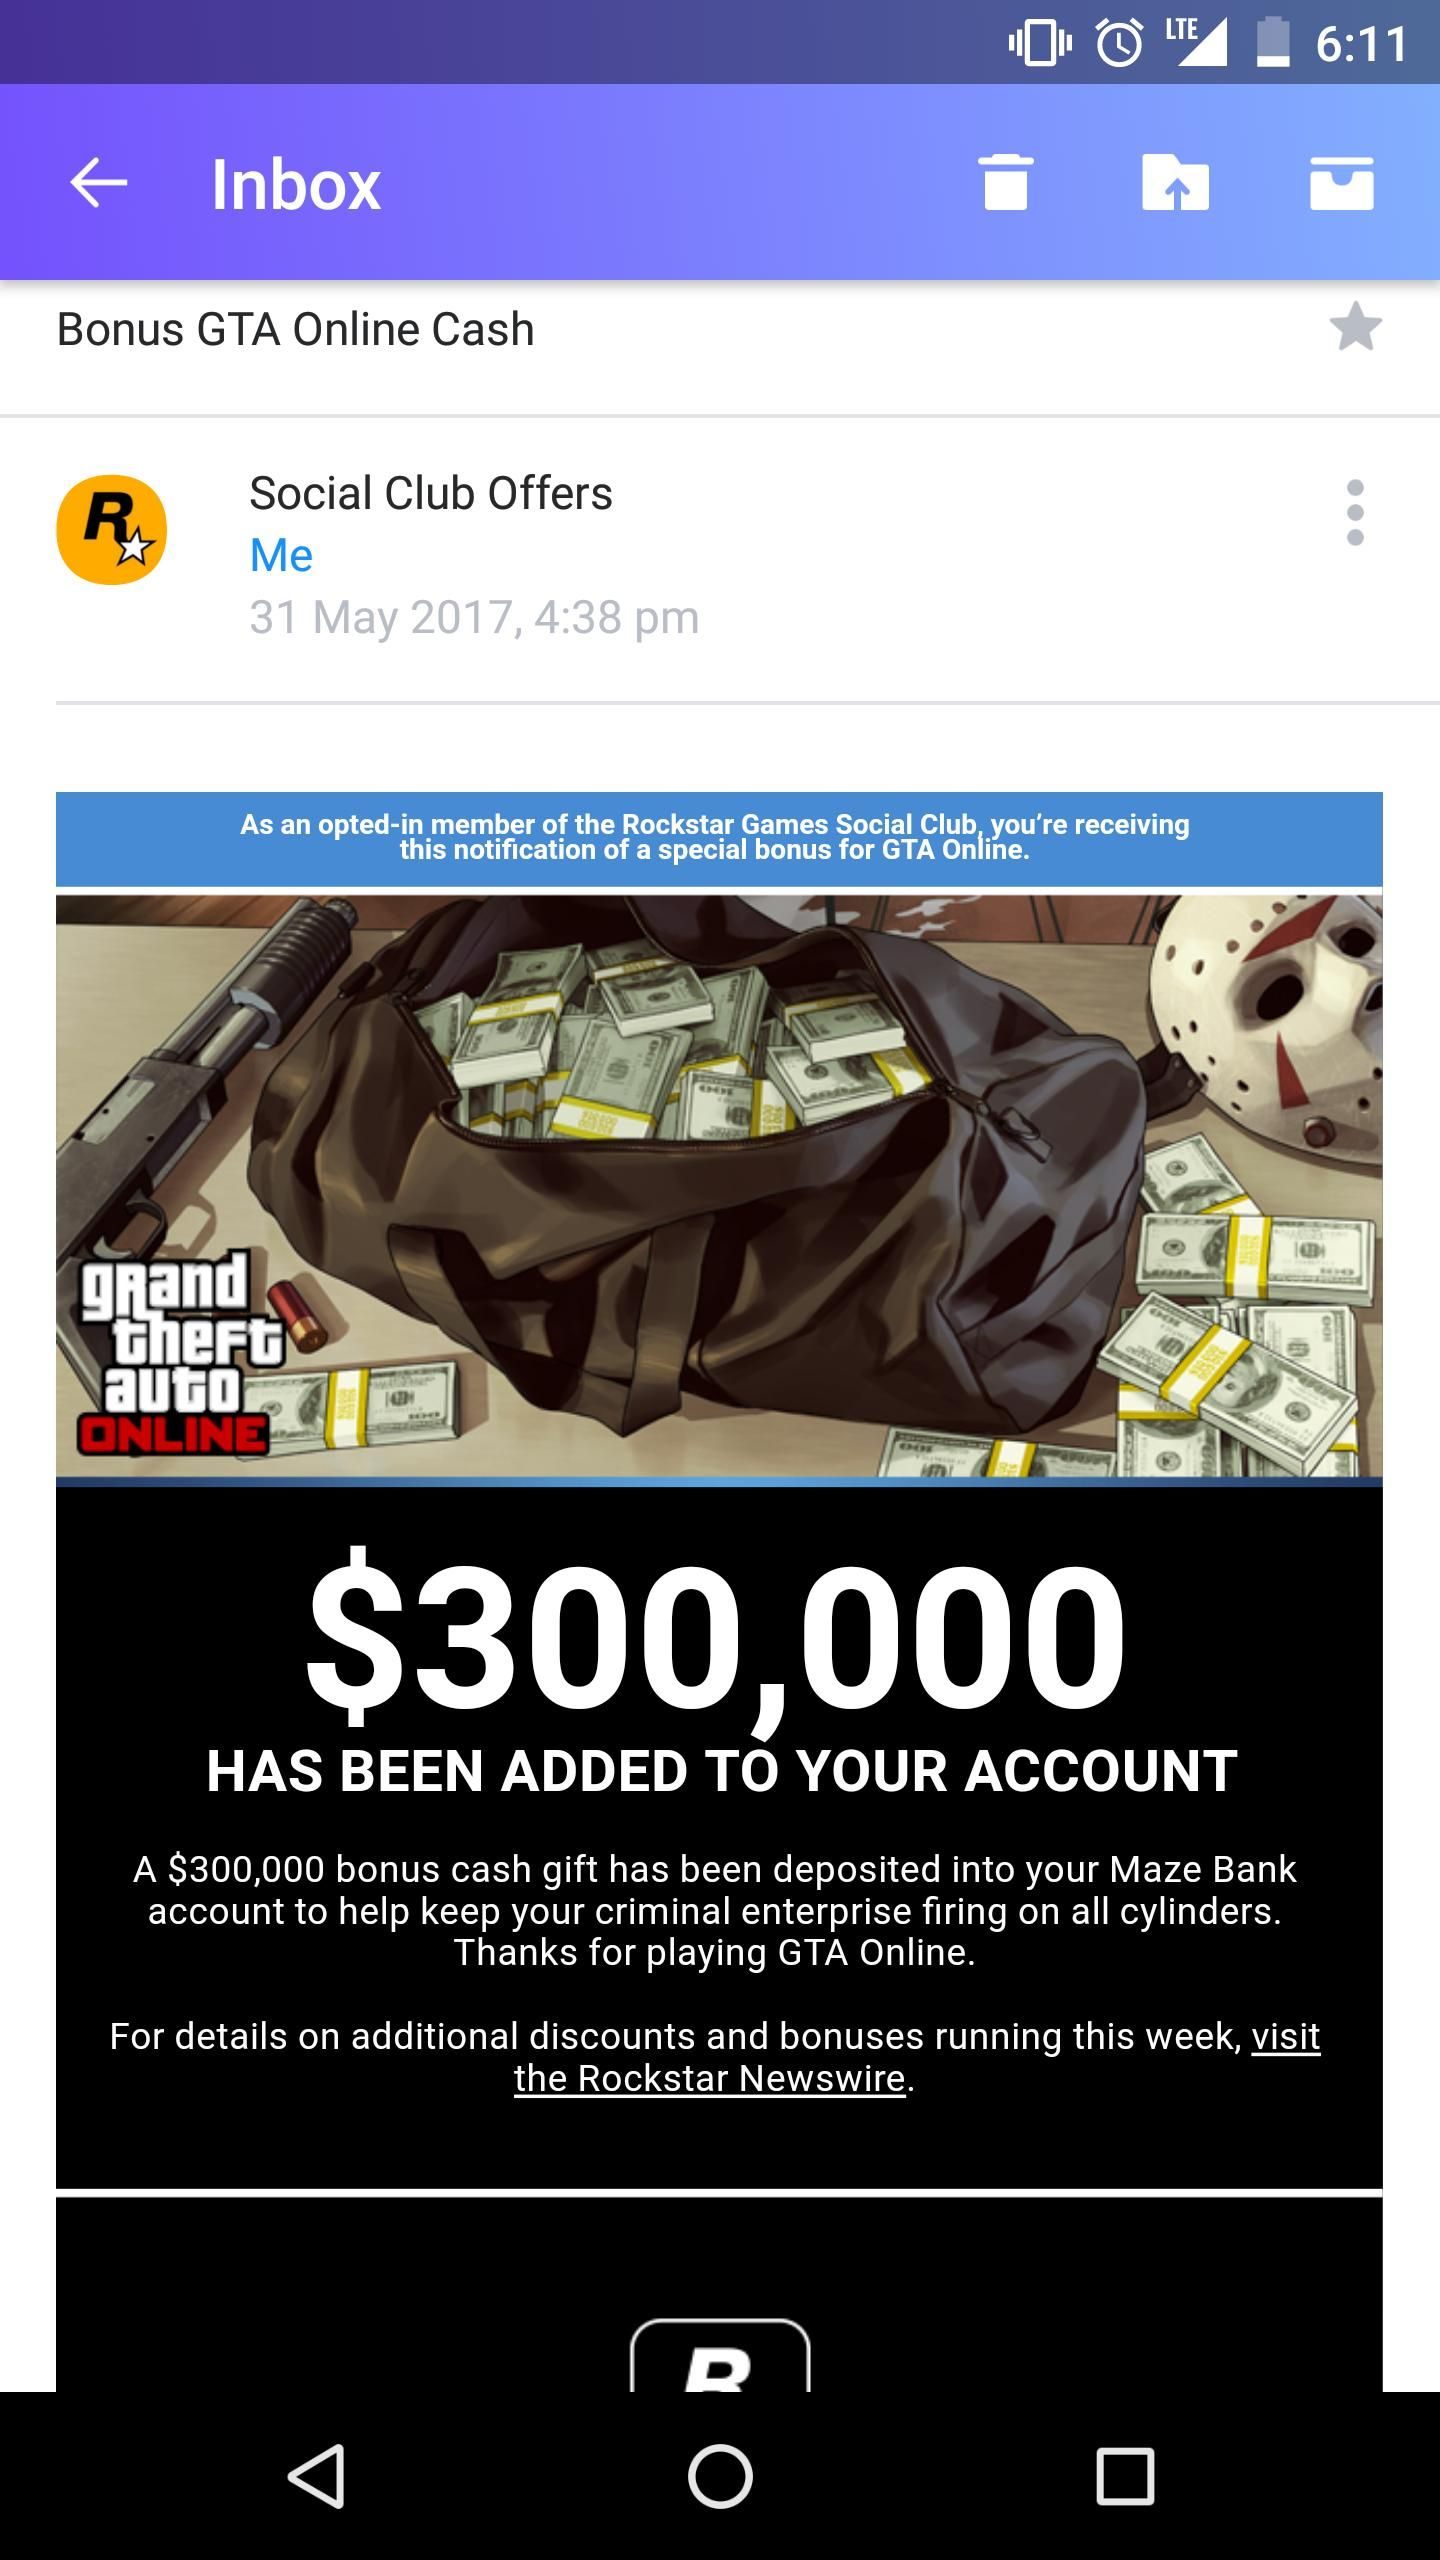 Alright Rockstar if you're sure. #GrandTheftAutoV #GTAV #GTA5 #GrandTheftAuto #GTA #GTAOnline #GrandTheftAuto5 #PS4 #games